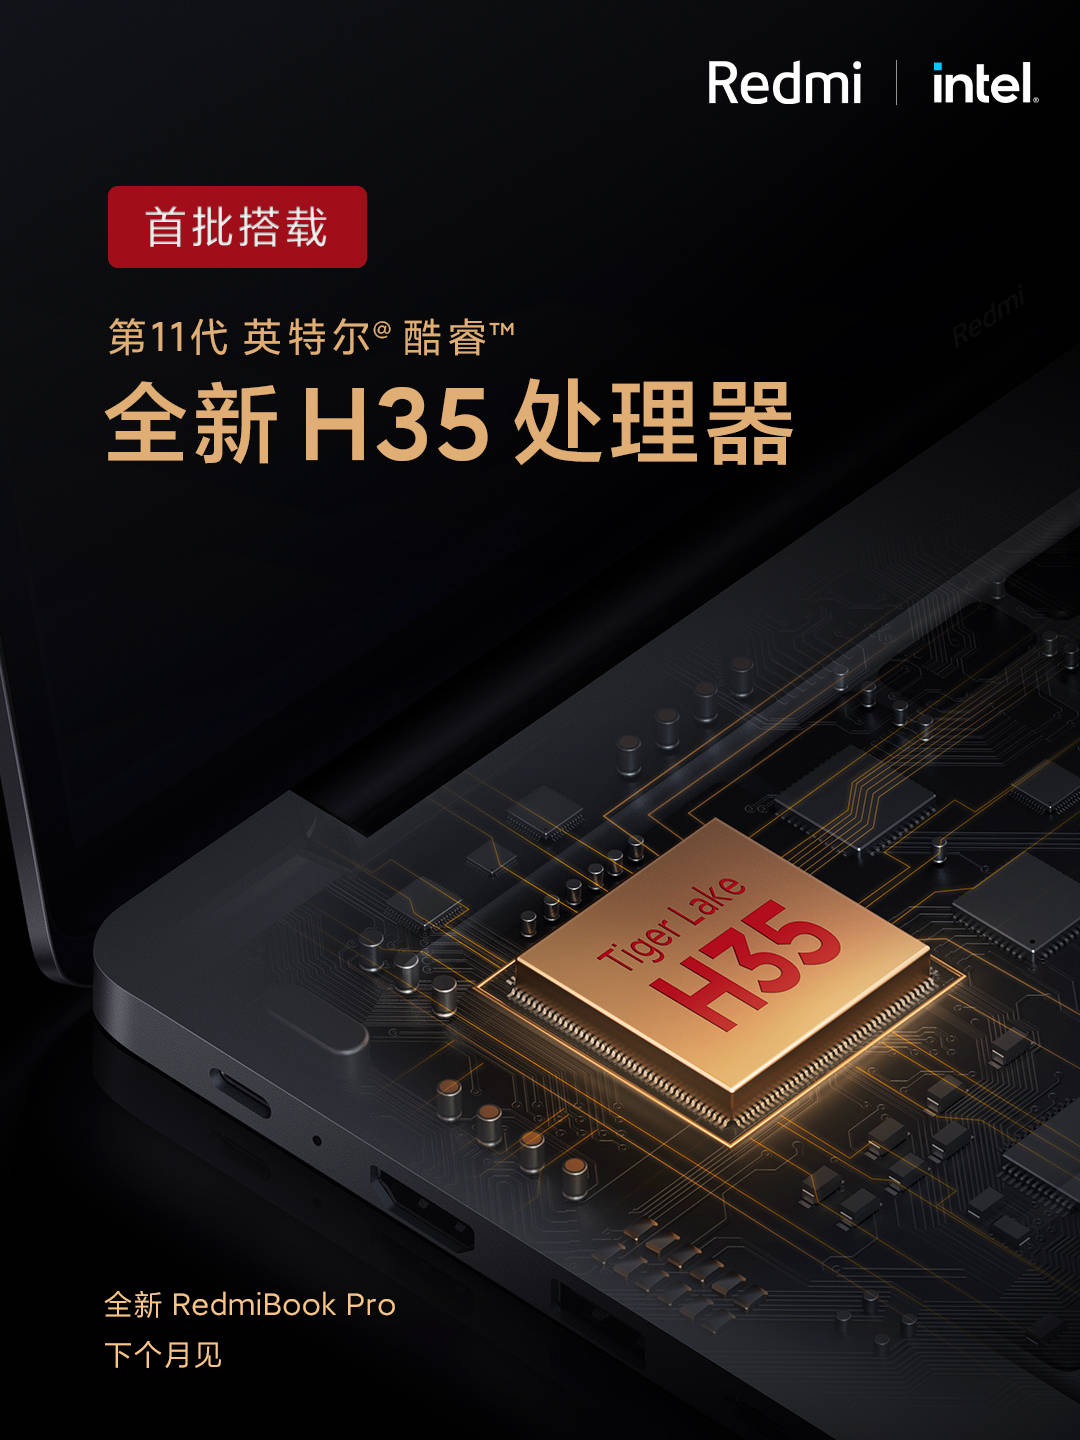 Xiaomi announces the RedmiBook Pro, the first ultra-notebooks to use the Intel Tiger Lake H35. News Xiaomi